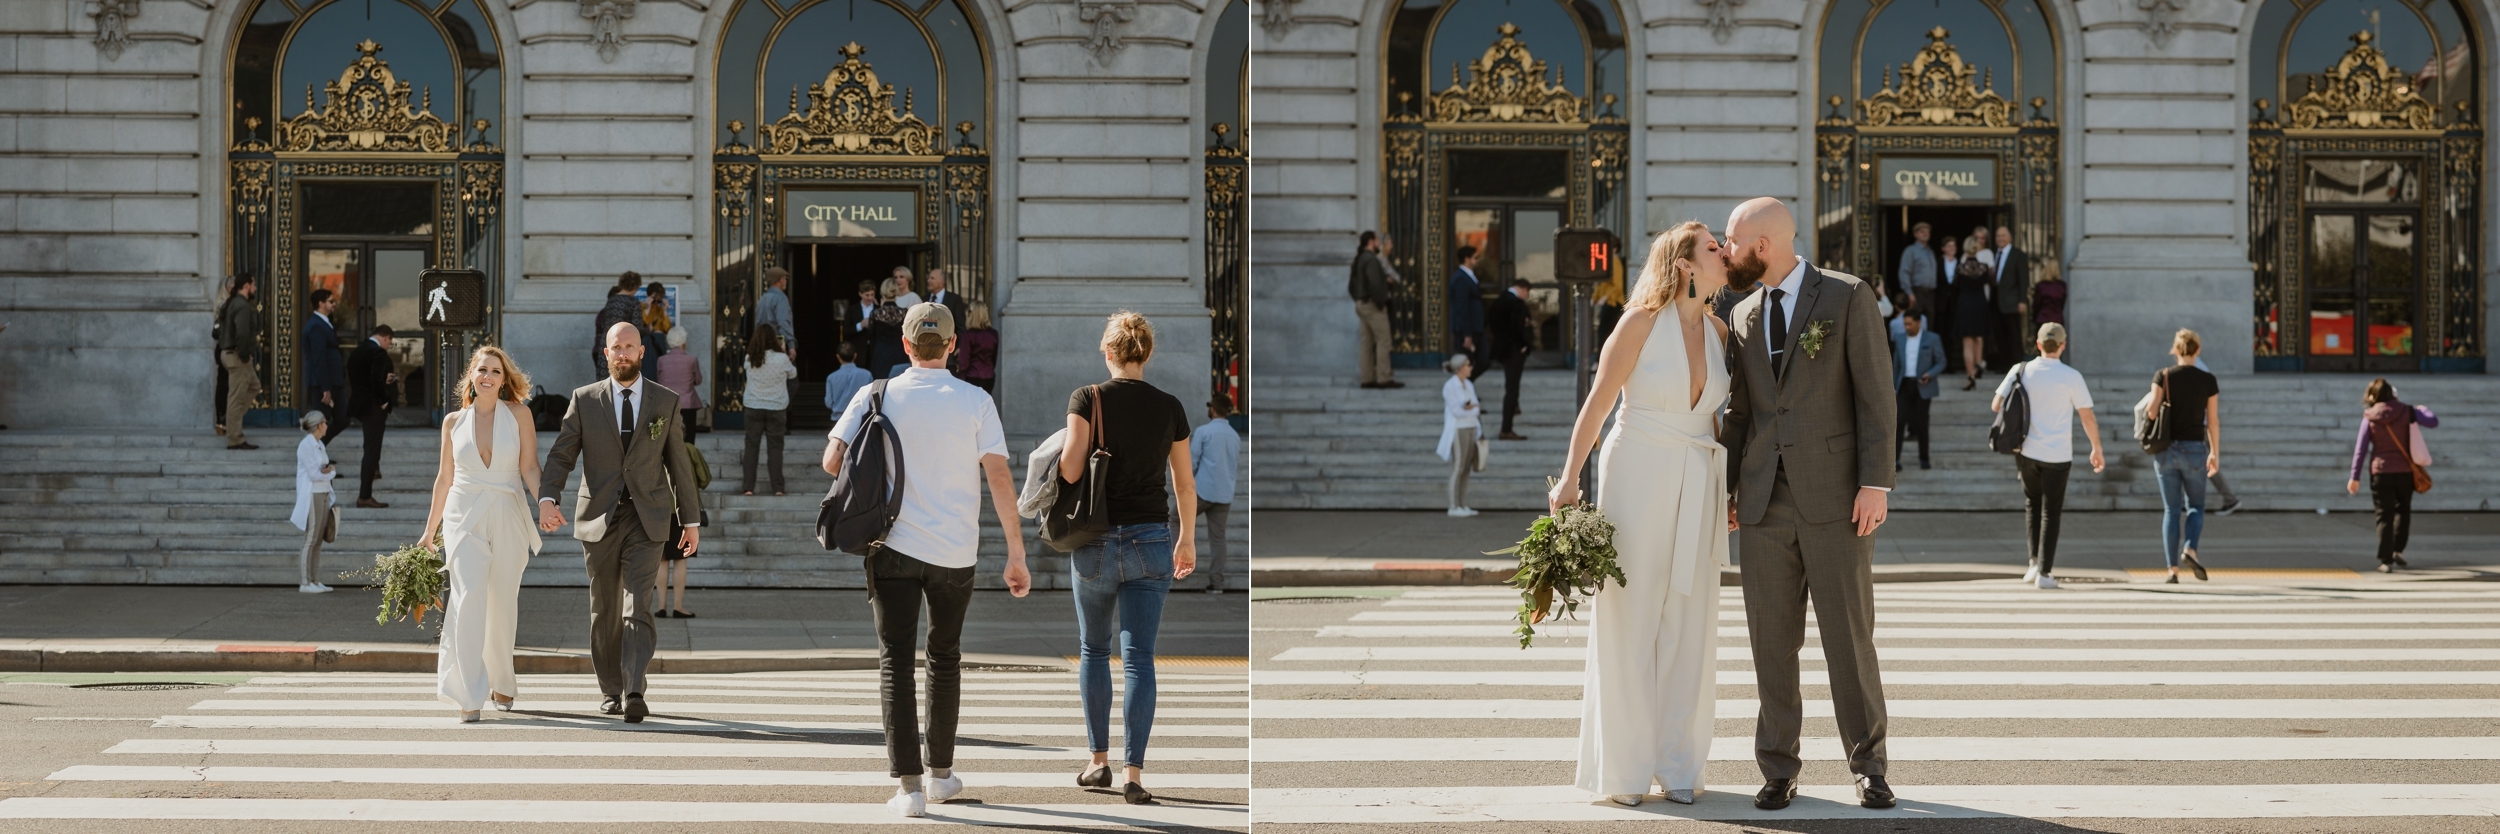 destination-elopement-at-san-francisco-city-hall-vivianchen-273_WEB.jpg